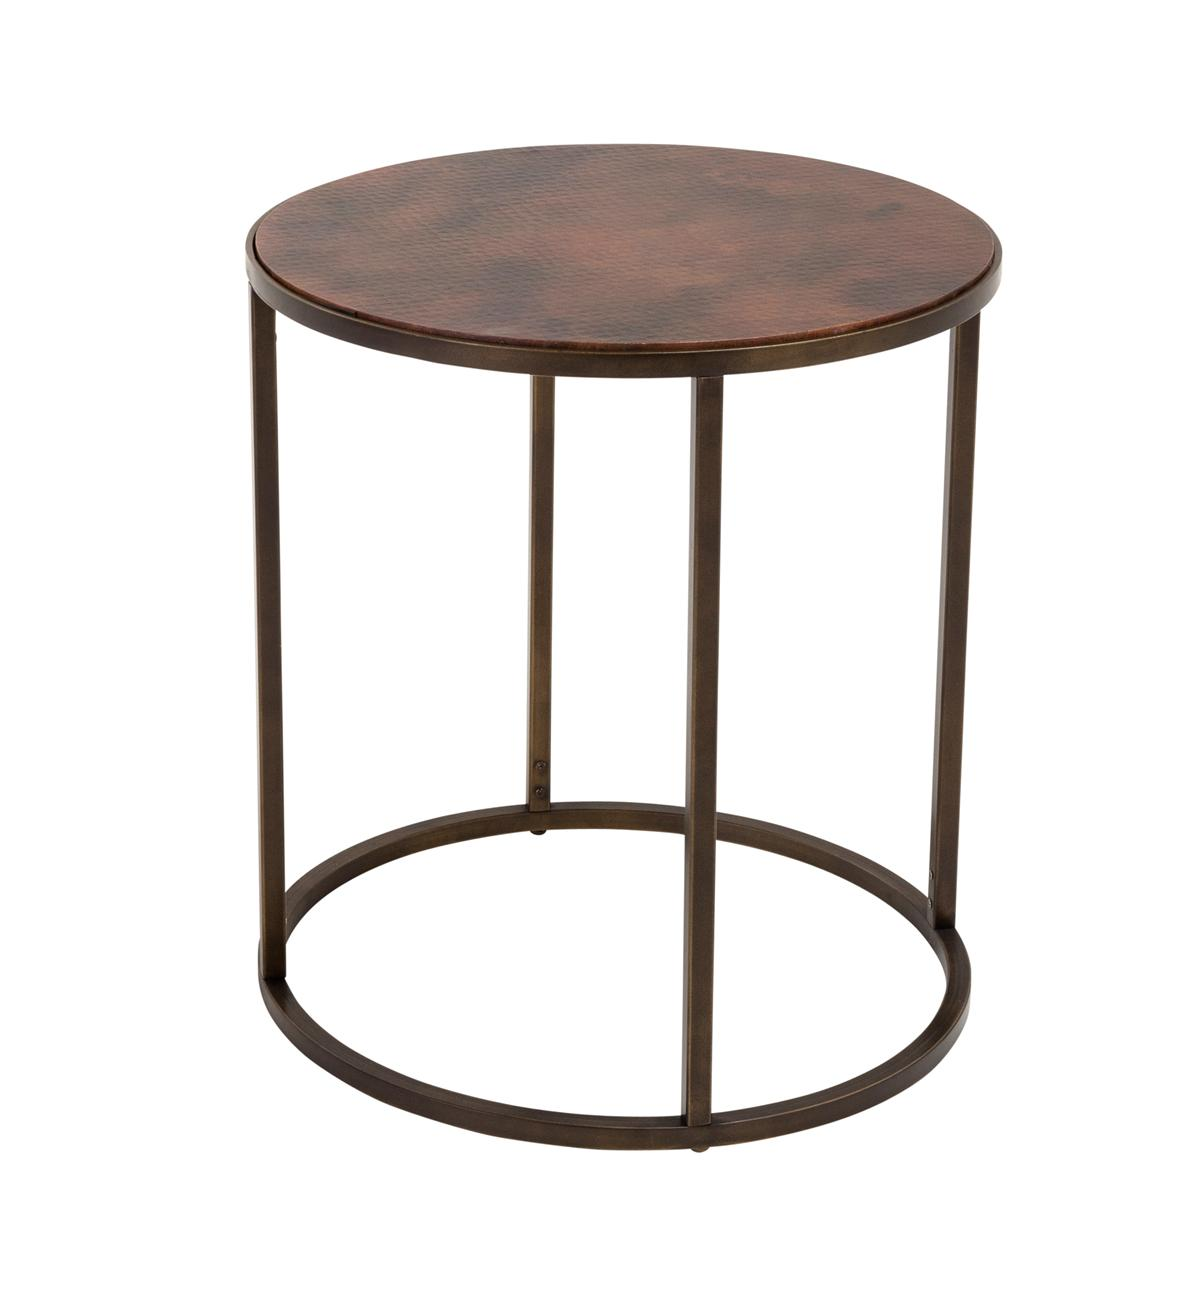 copper top end table furniture narrow accent threshold ethan allen pineapple uttermost samuelle wooden small modern lamp pottery barn with bench glass drawer entry way storage